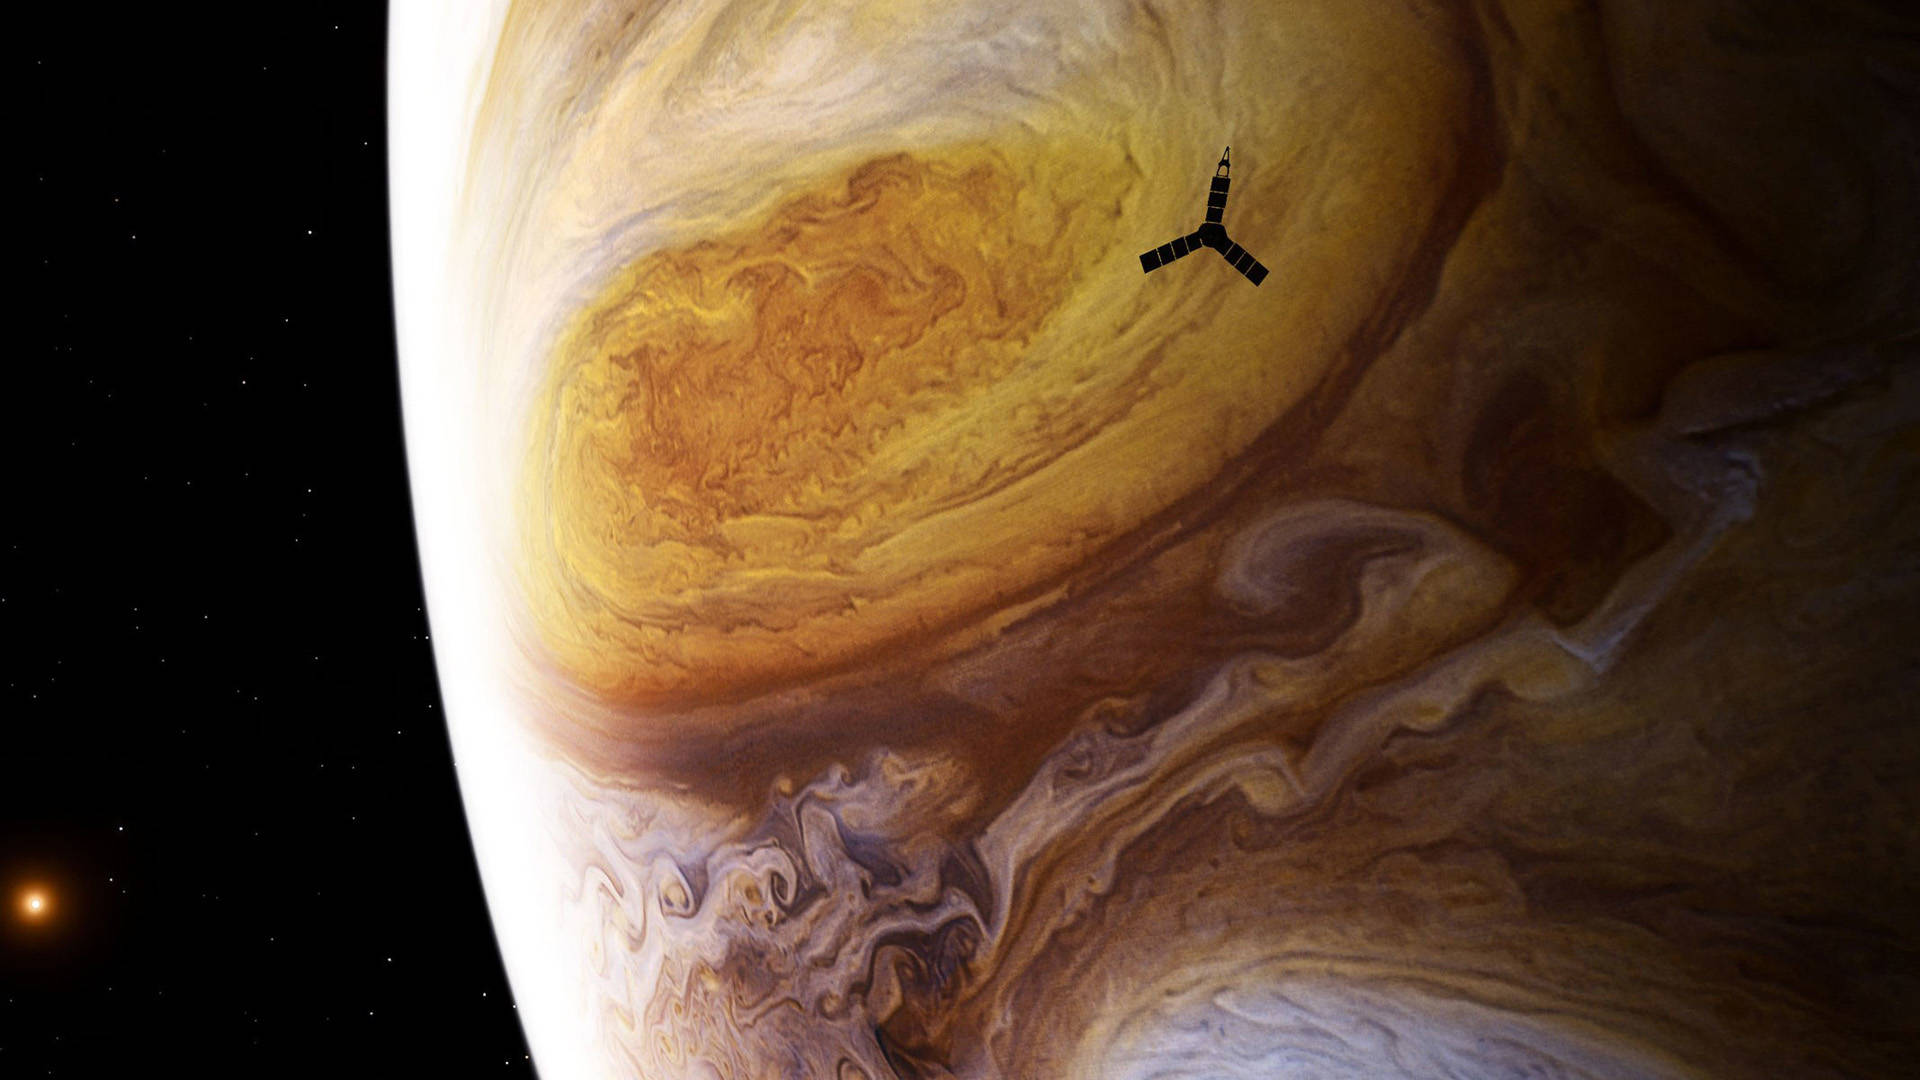 Depiction of NASA's Juno spacecraft during its close encounter with Jupiter's famous Great Red Spot.  NASA/JPL/Björn Jónsson/Seán Doran